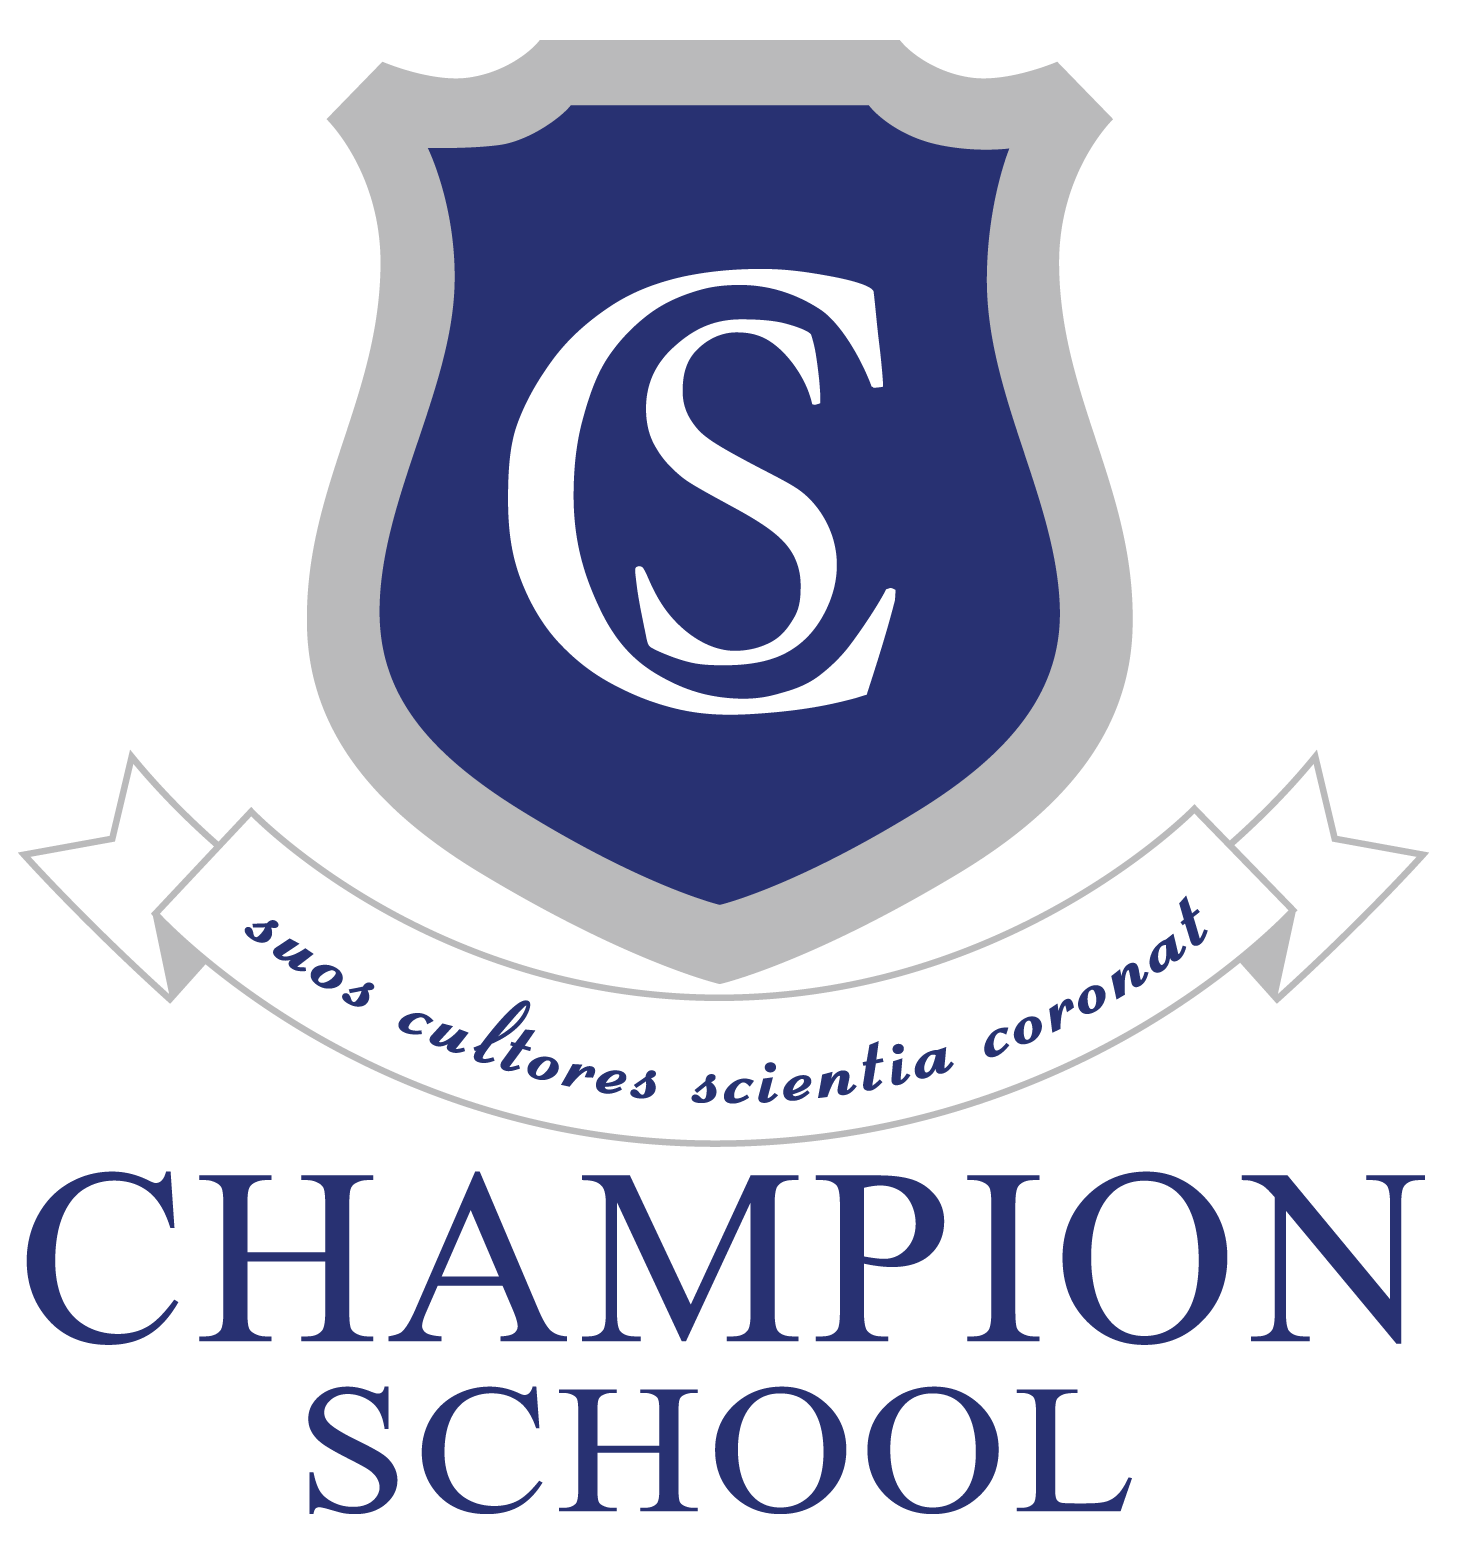 Champion School Logo